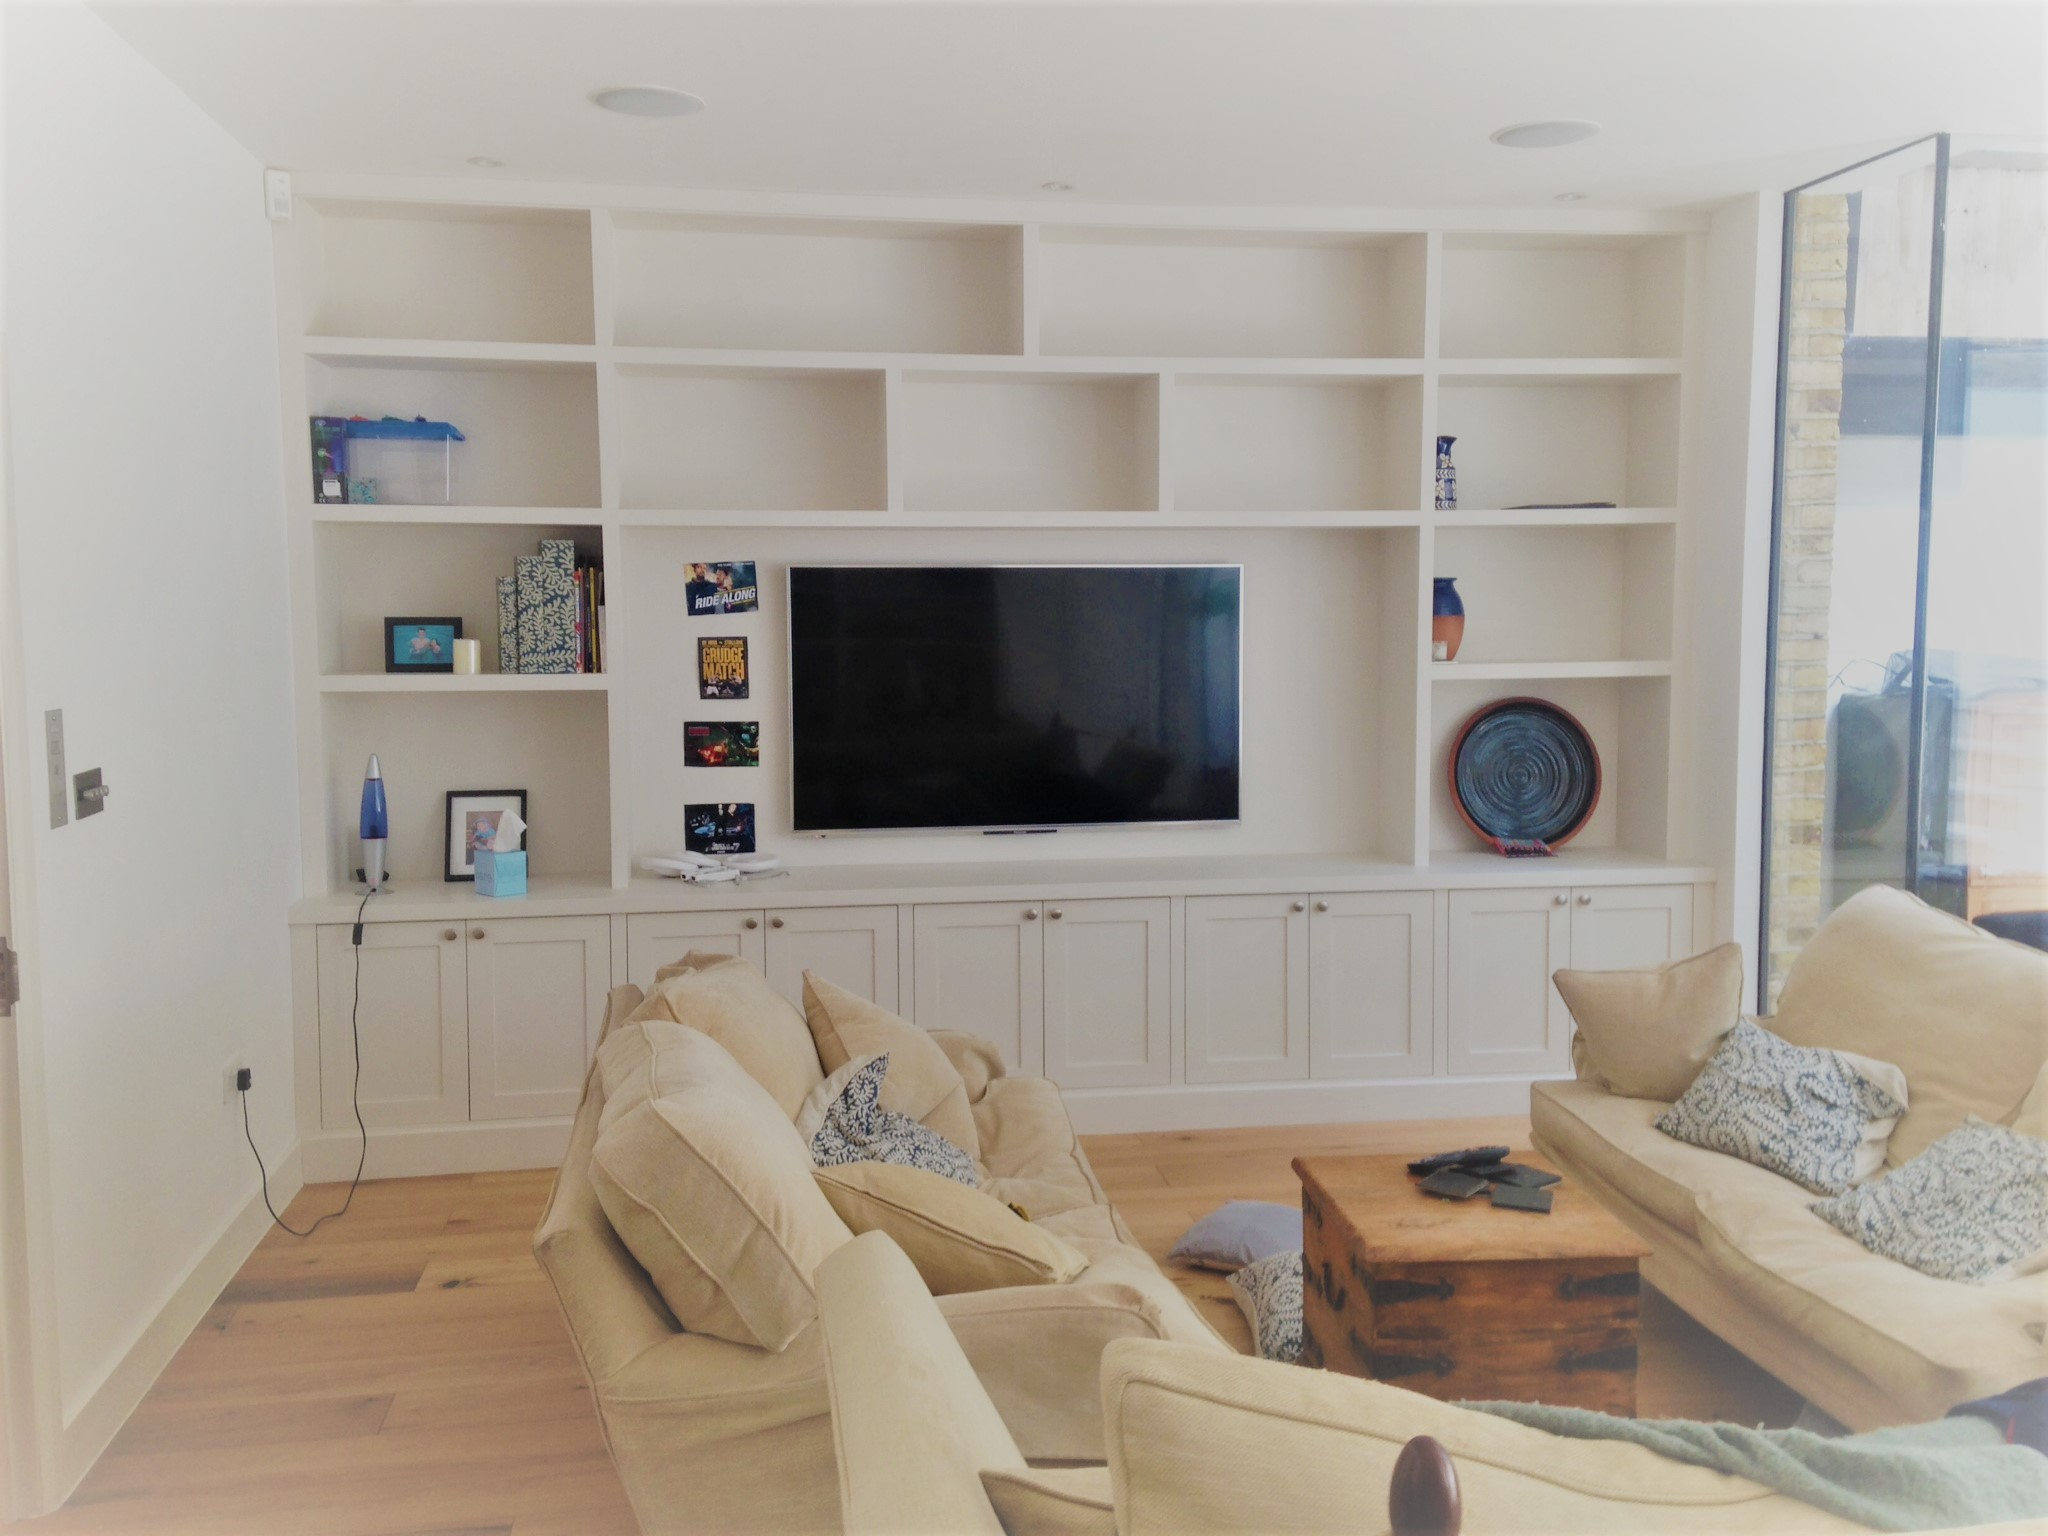 This Unit Utilizes the space from wall to wall, adding a great amount of storage space but also allowing the television to still be a central focal point.